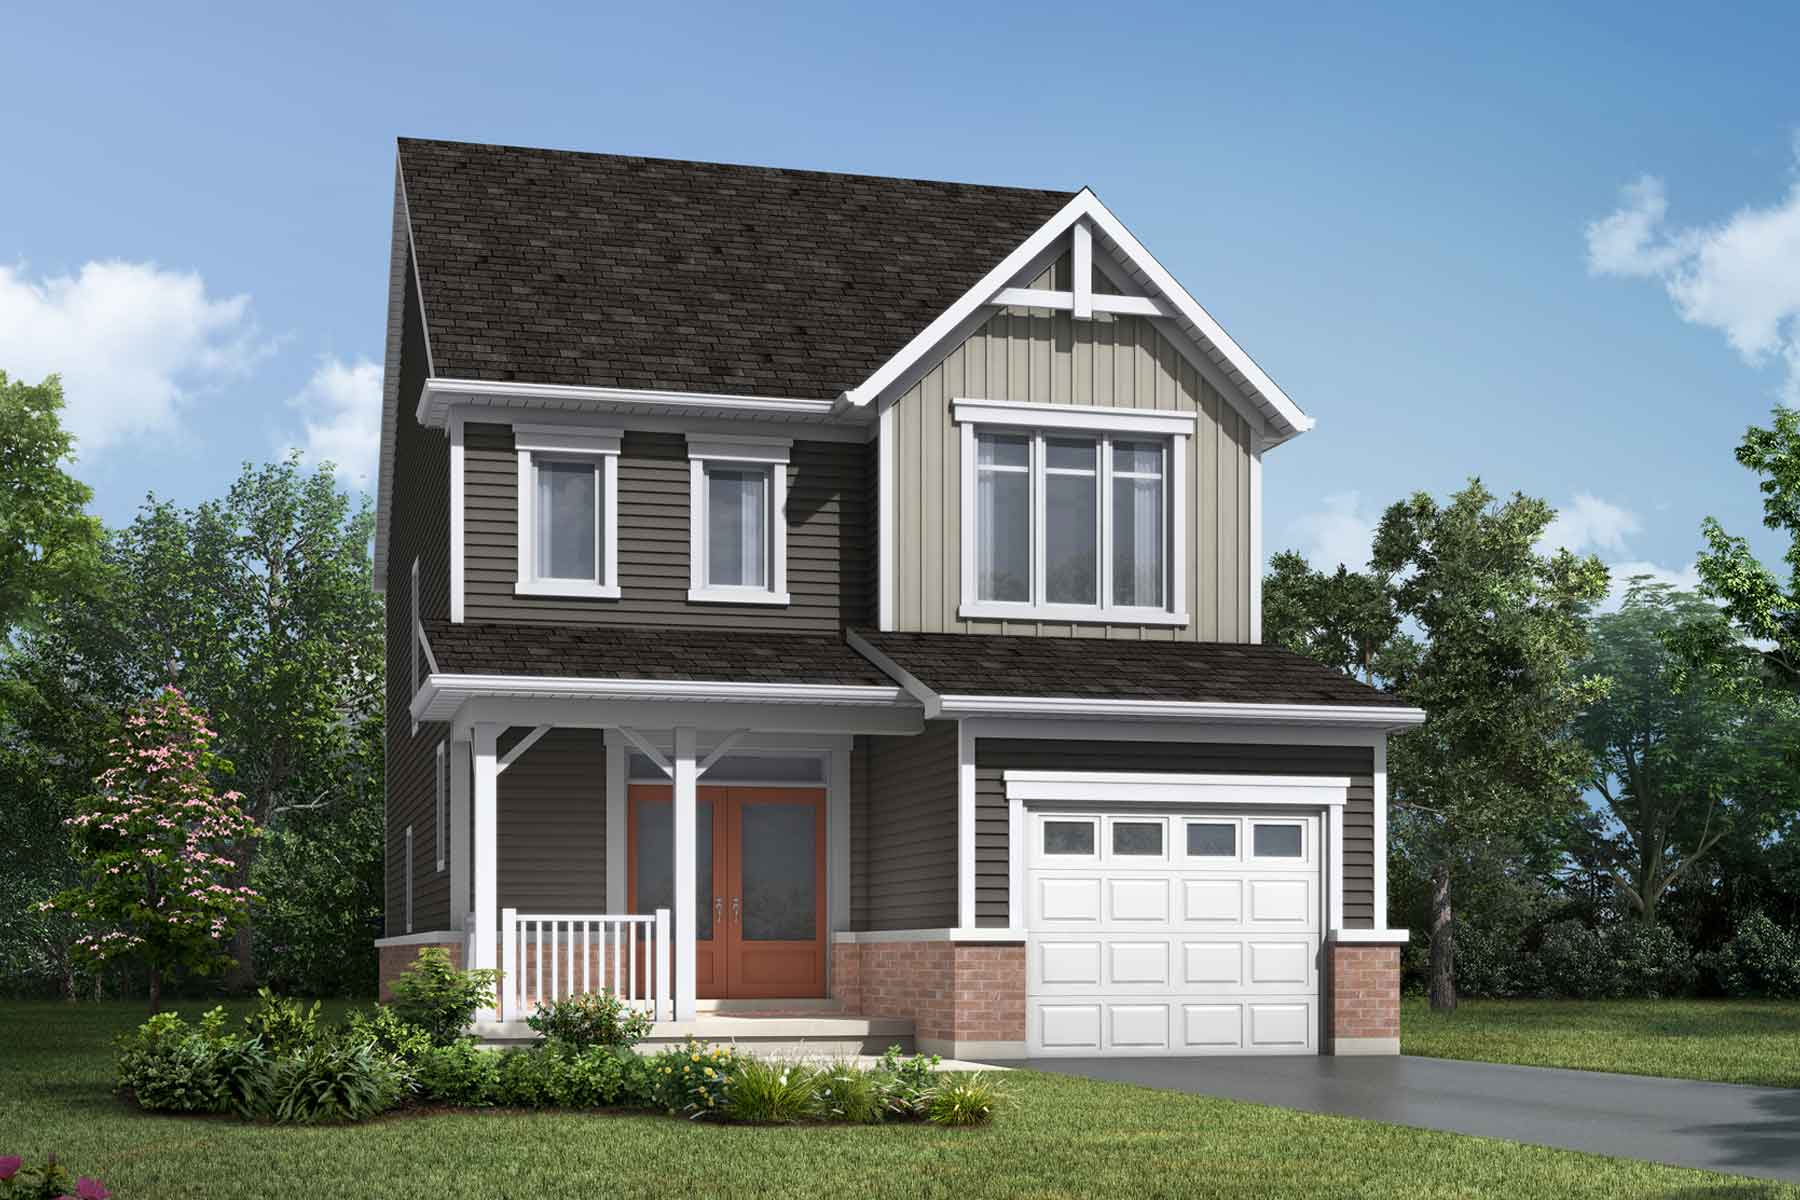 The Alderview Plan farmhouse_southestates_alderview at Wildflower Crossing in Kitchener Ontario by Mattamy Homes